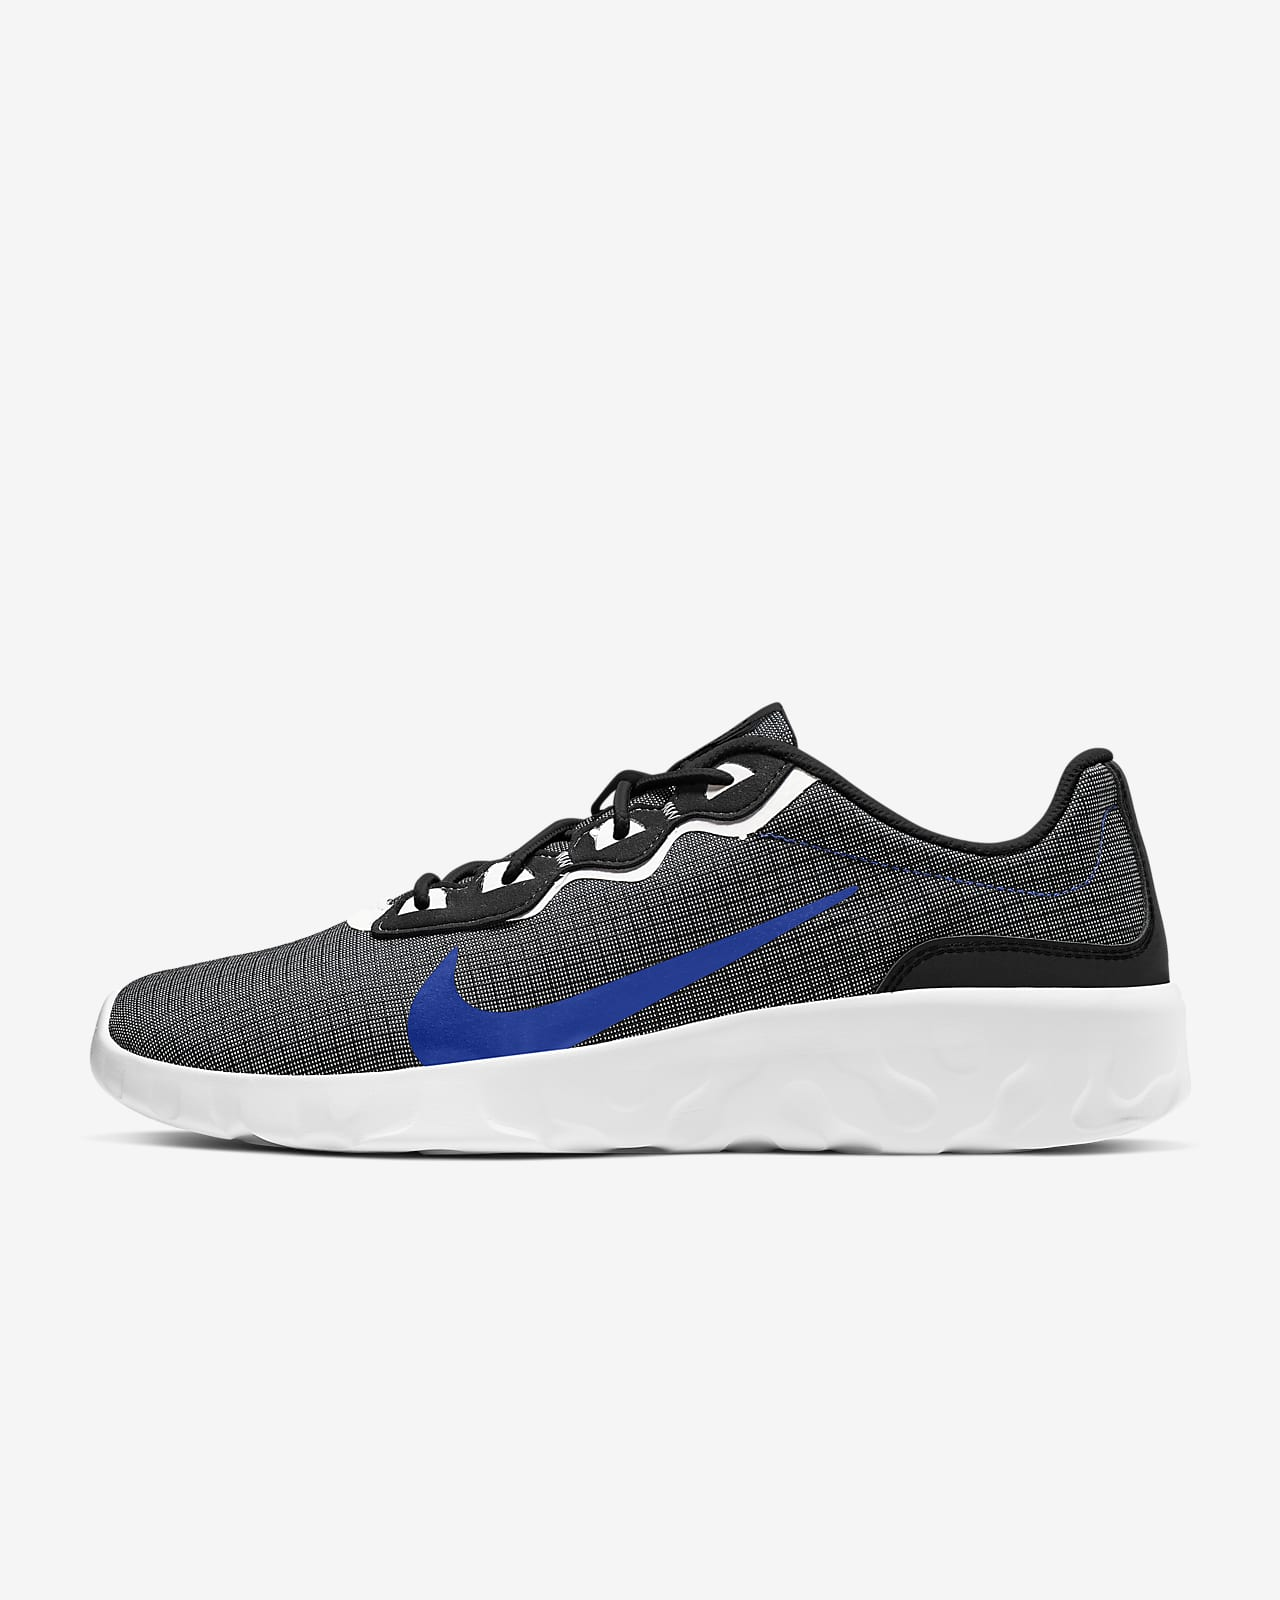 Nike Explore Strada Men's Shoe